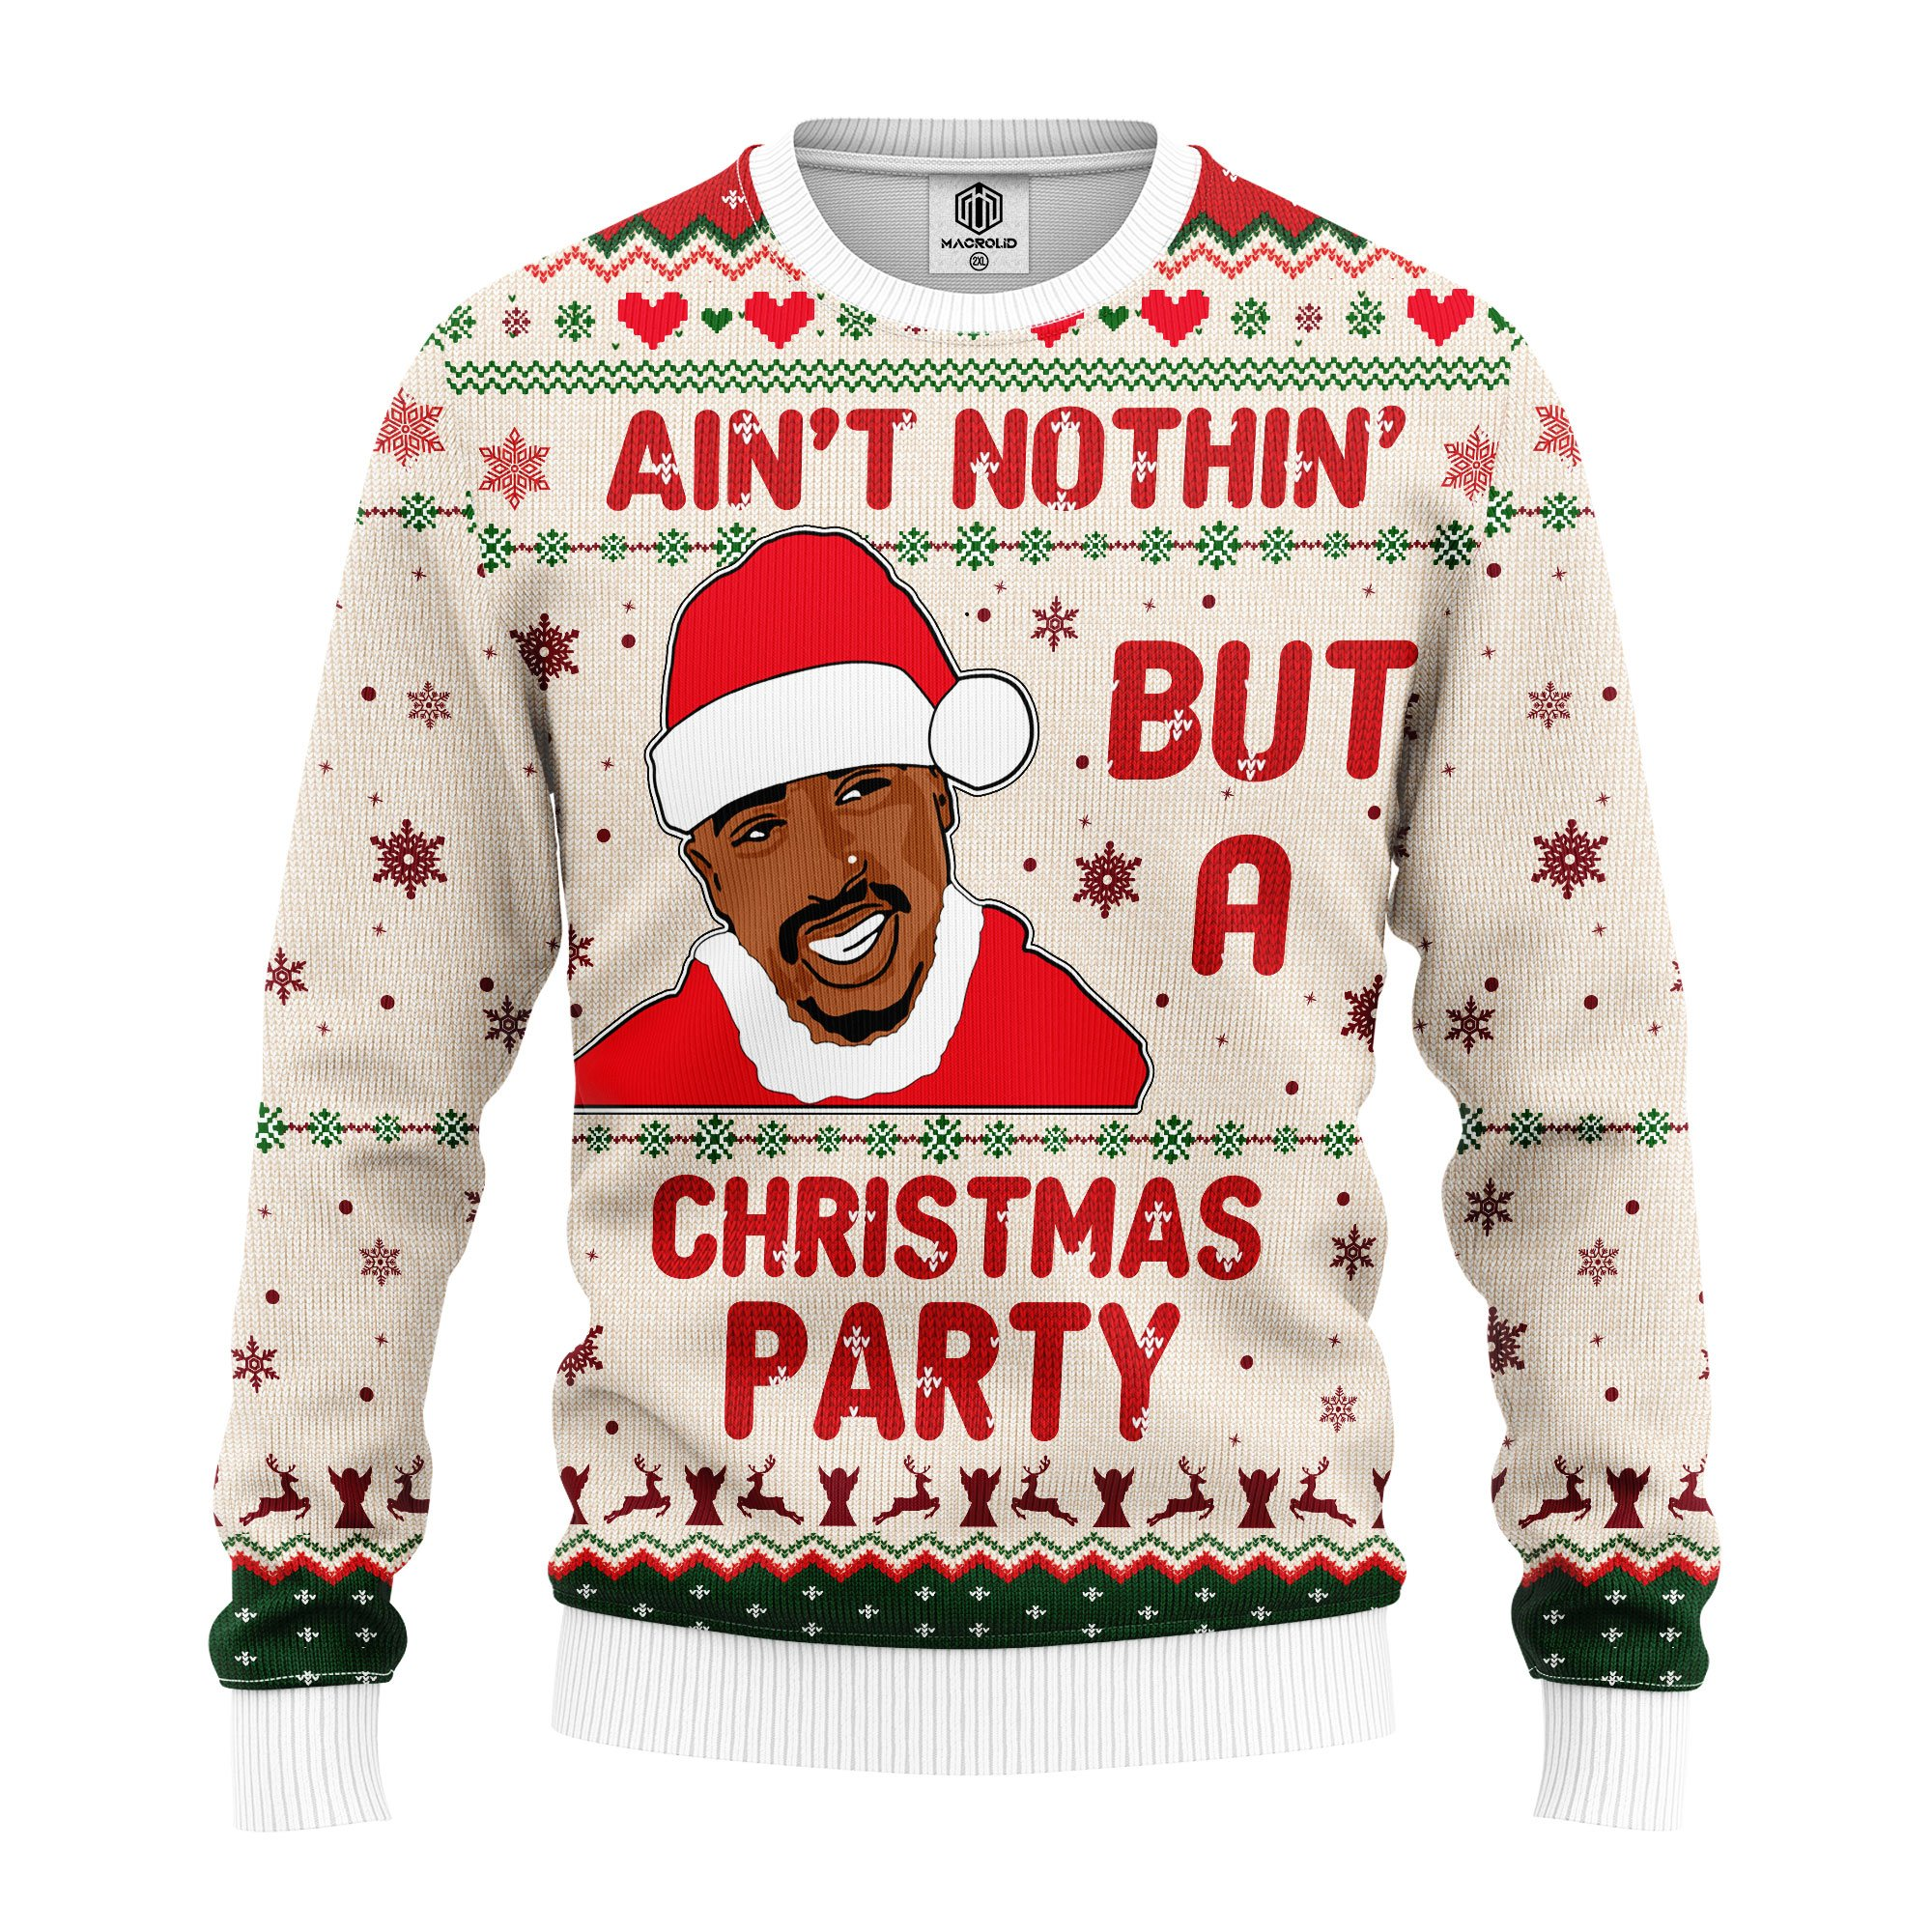 Ain't nothing but a christmas party sweater